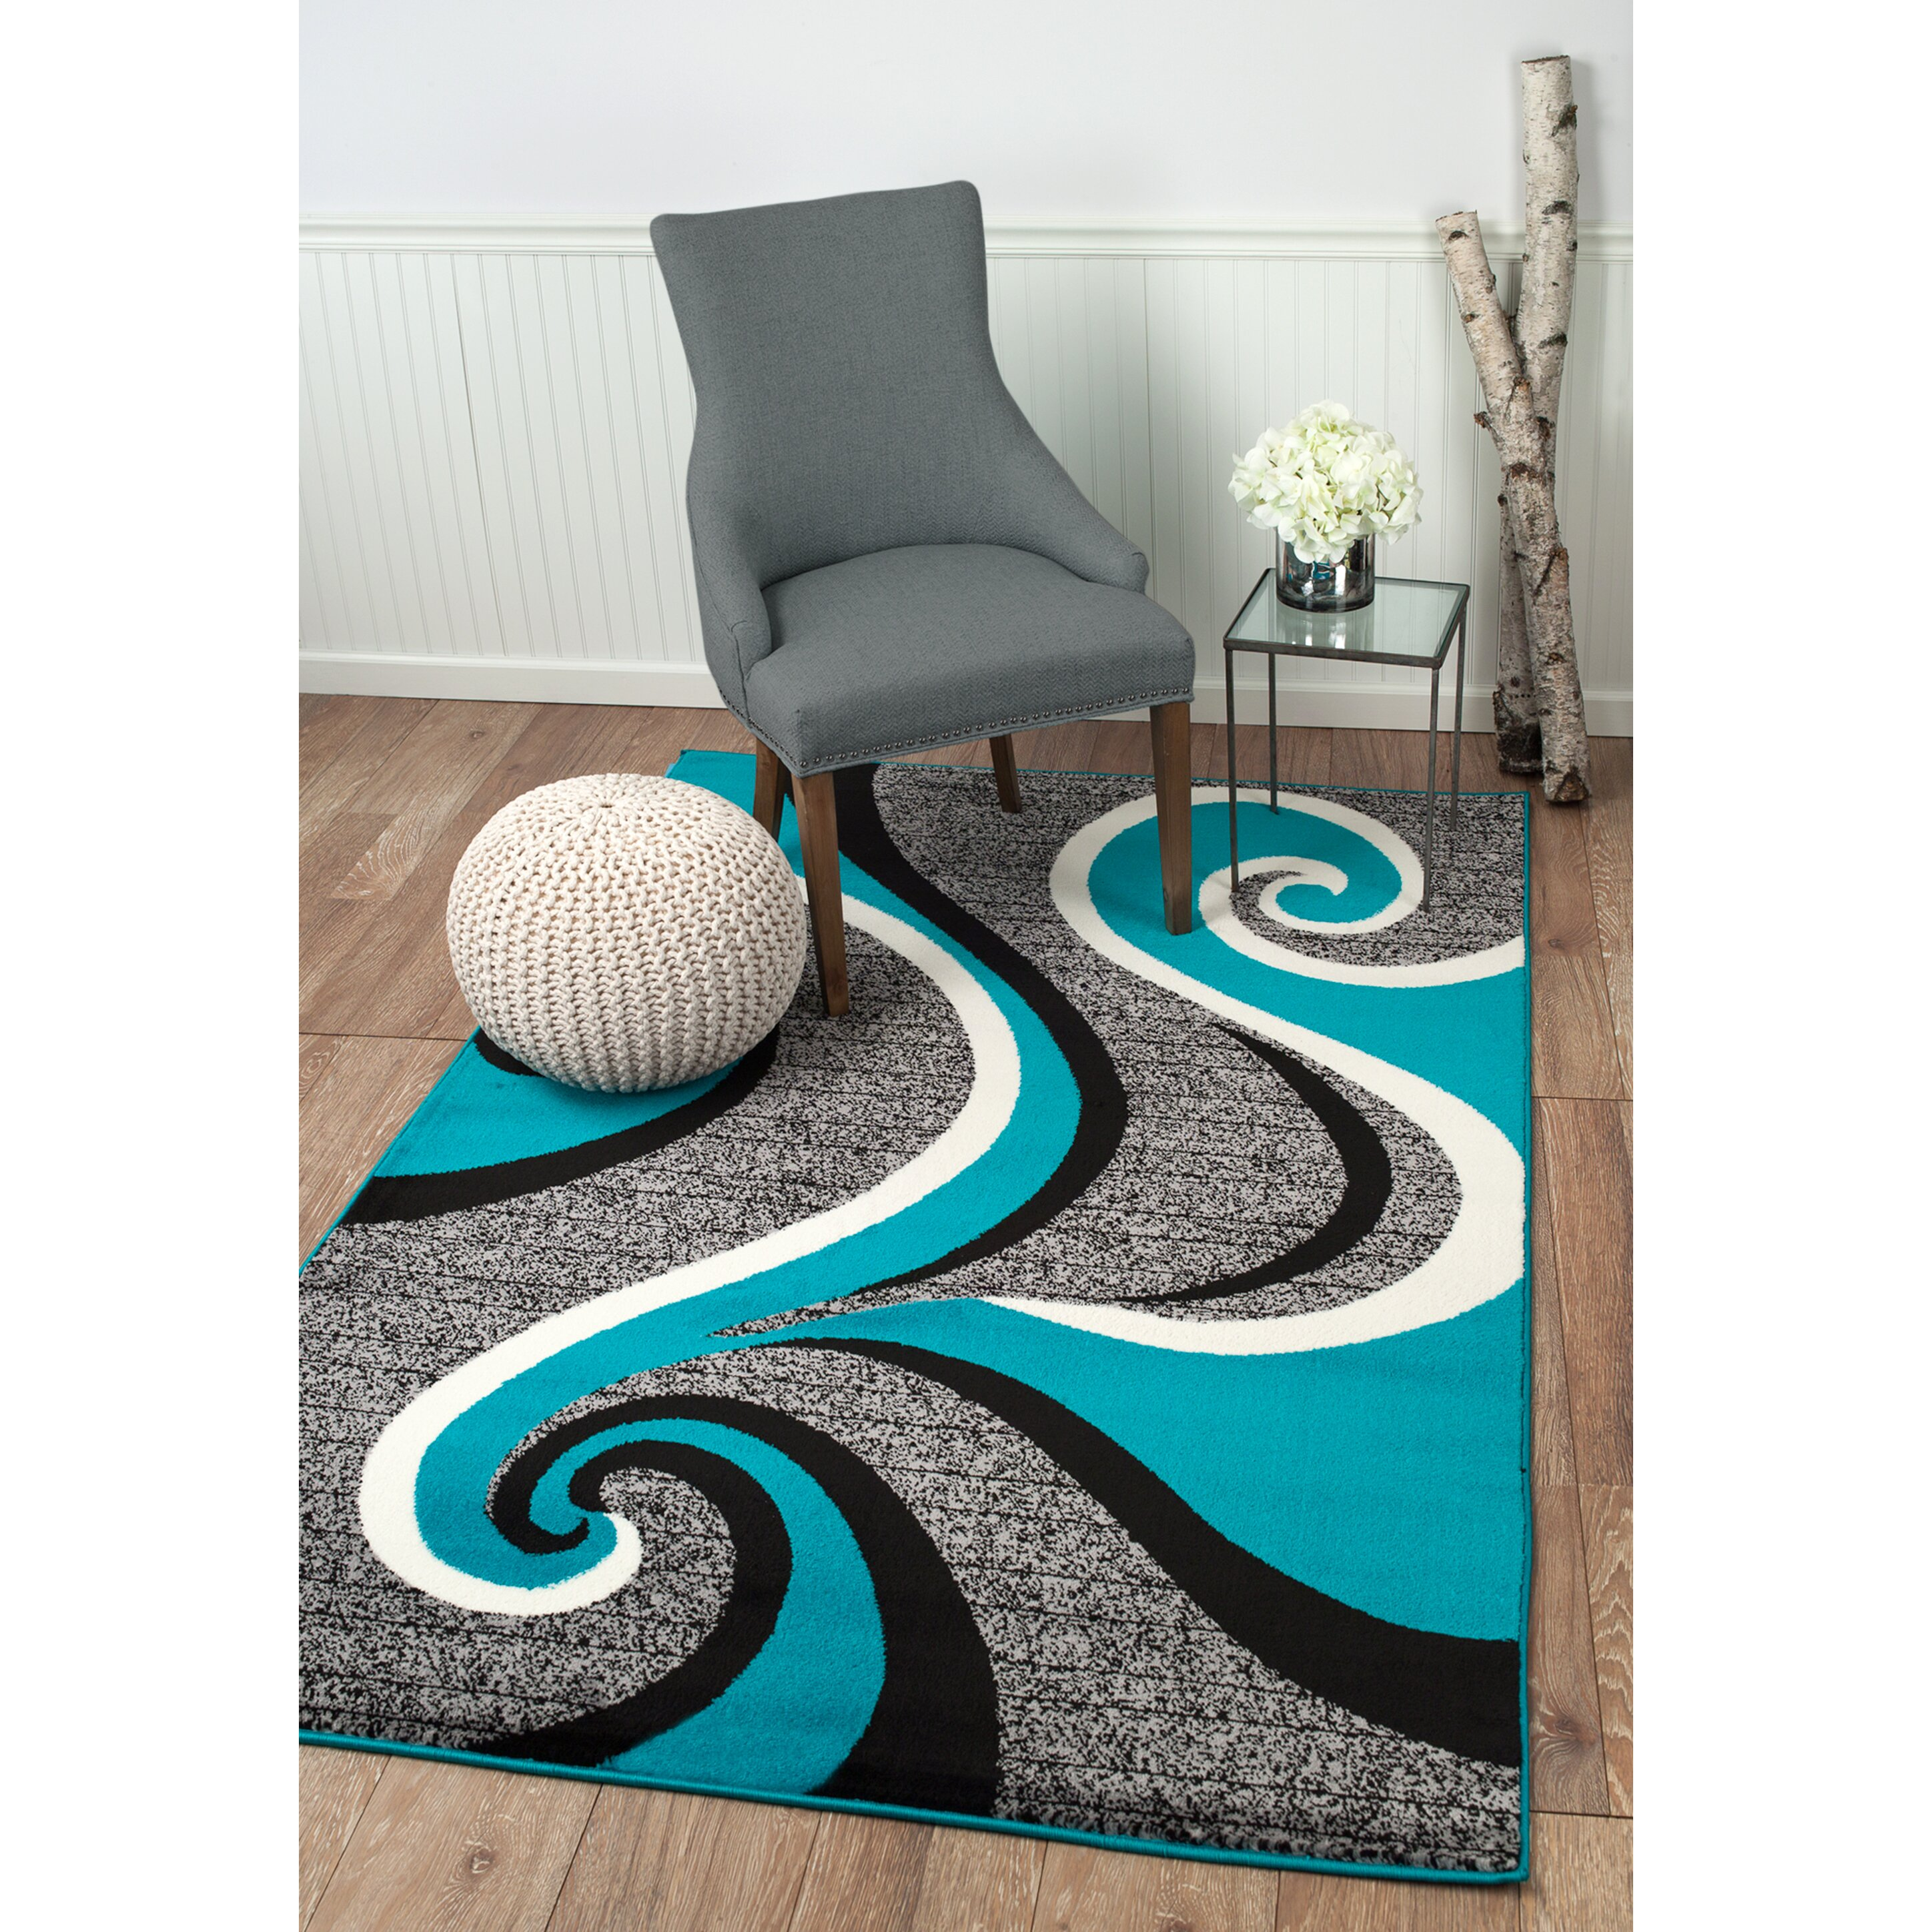 Rug And Decor Inc Summit Turquoise Area Rug Reviews